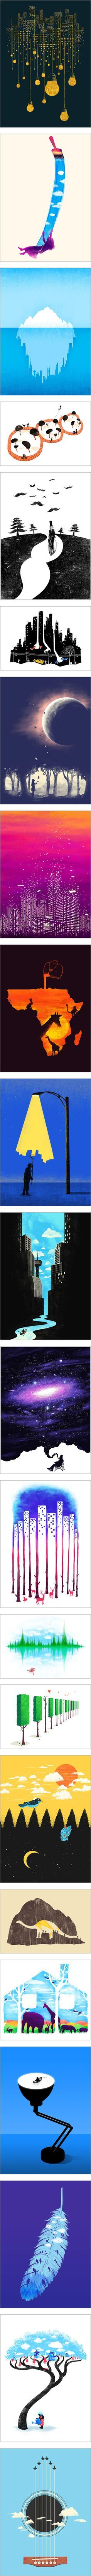 22 artworks with clever use of negative space. Could also work for Magritte style images.